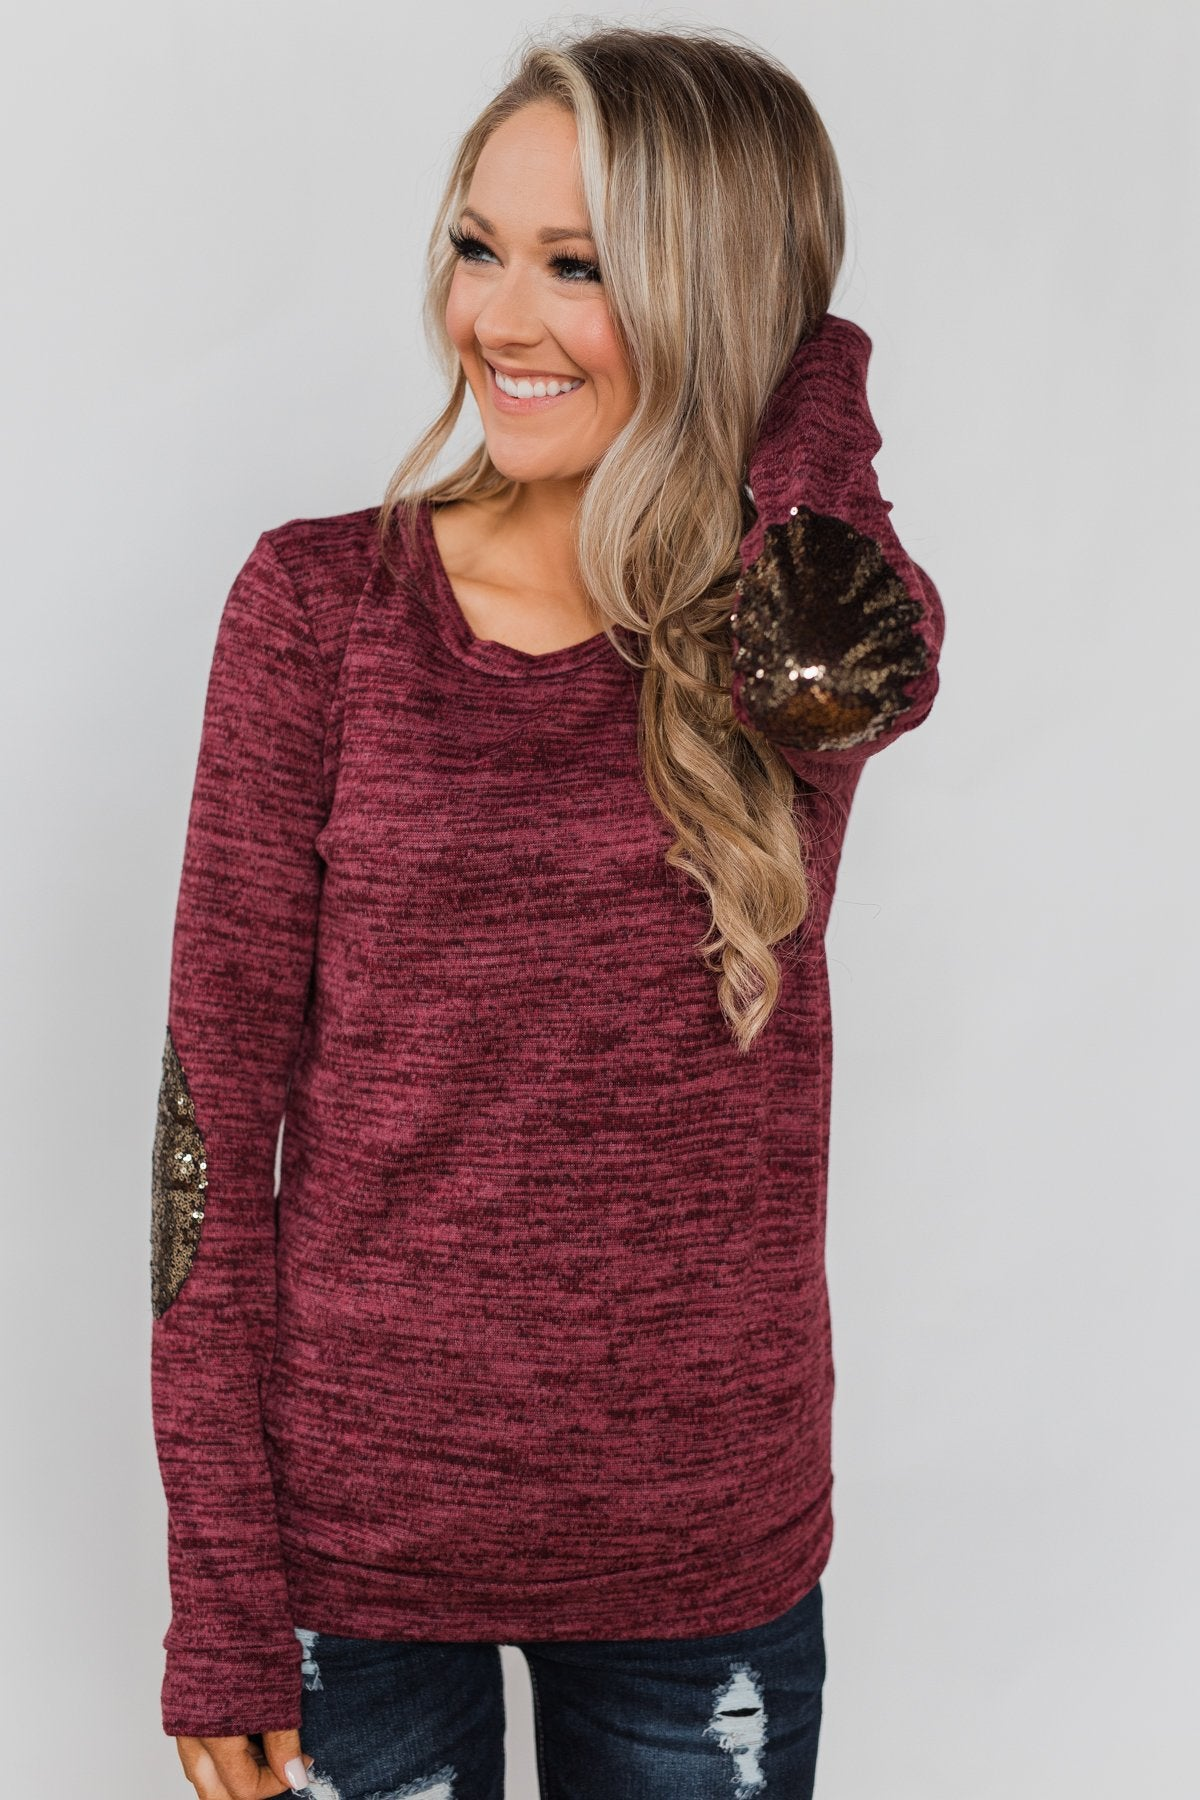 39627ff8607 Just Enough Sequin Elbow Patch Sweater- Plum – The Pulse Boutique